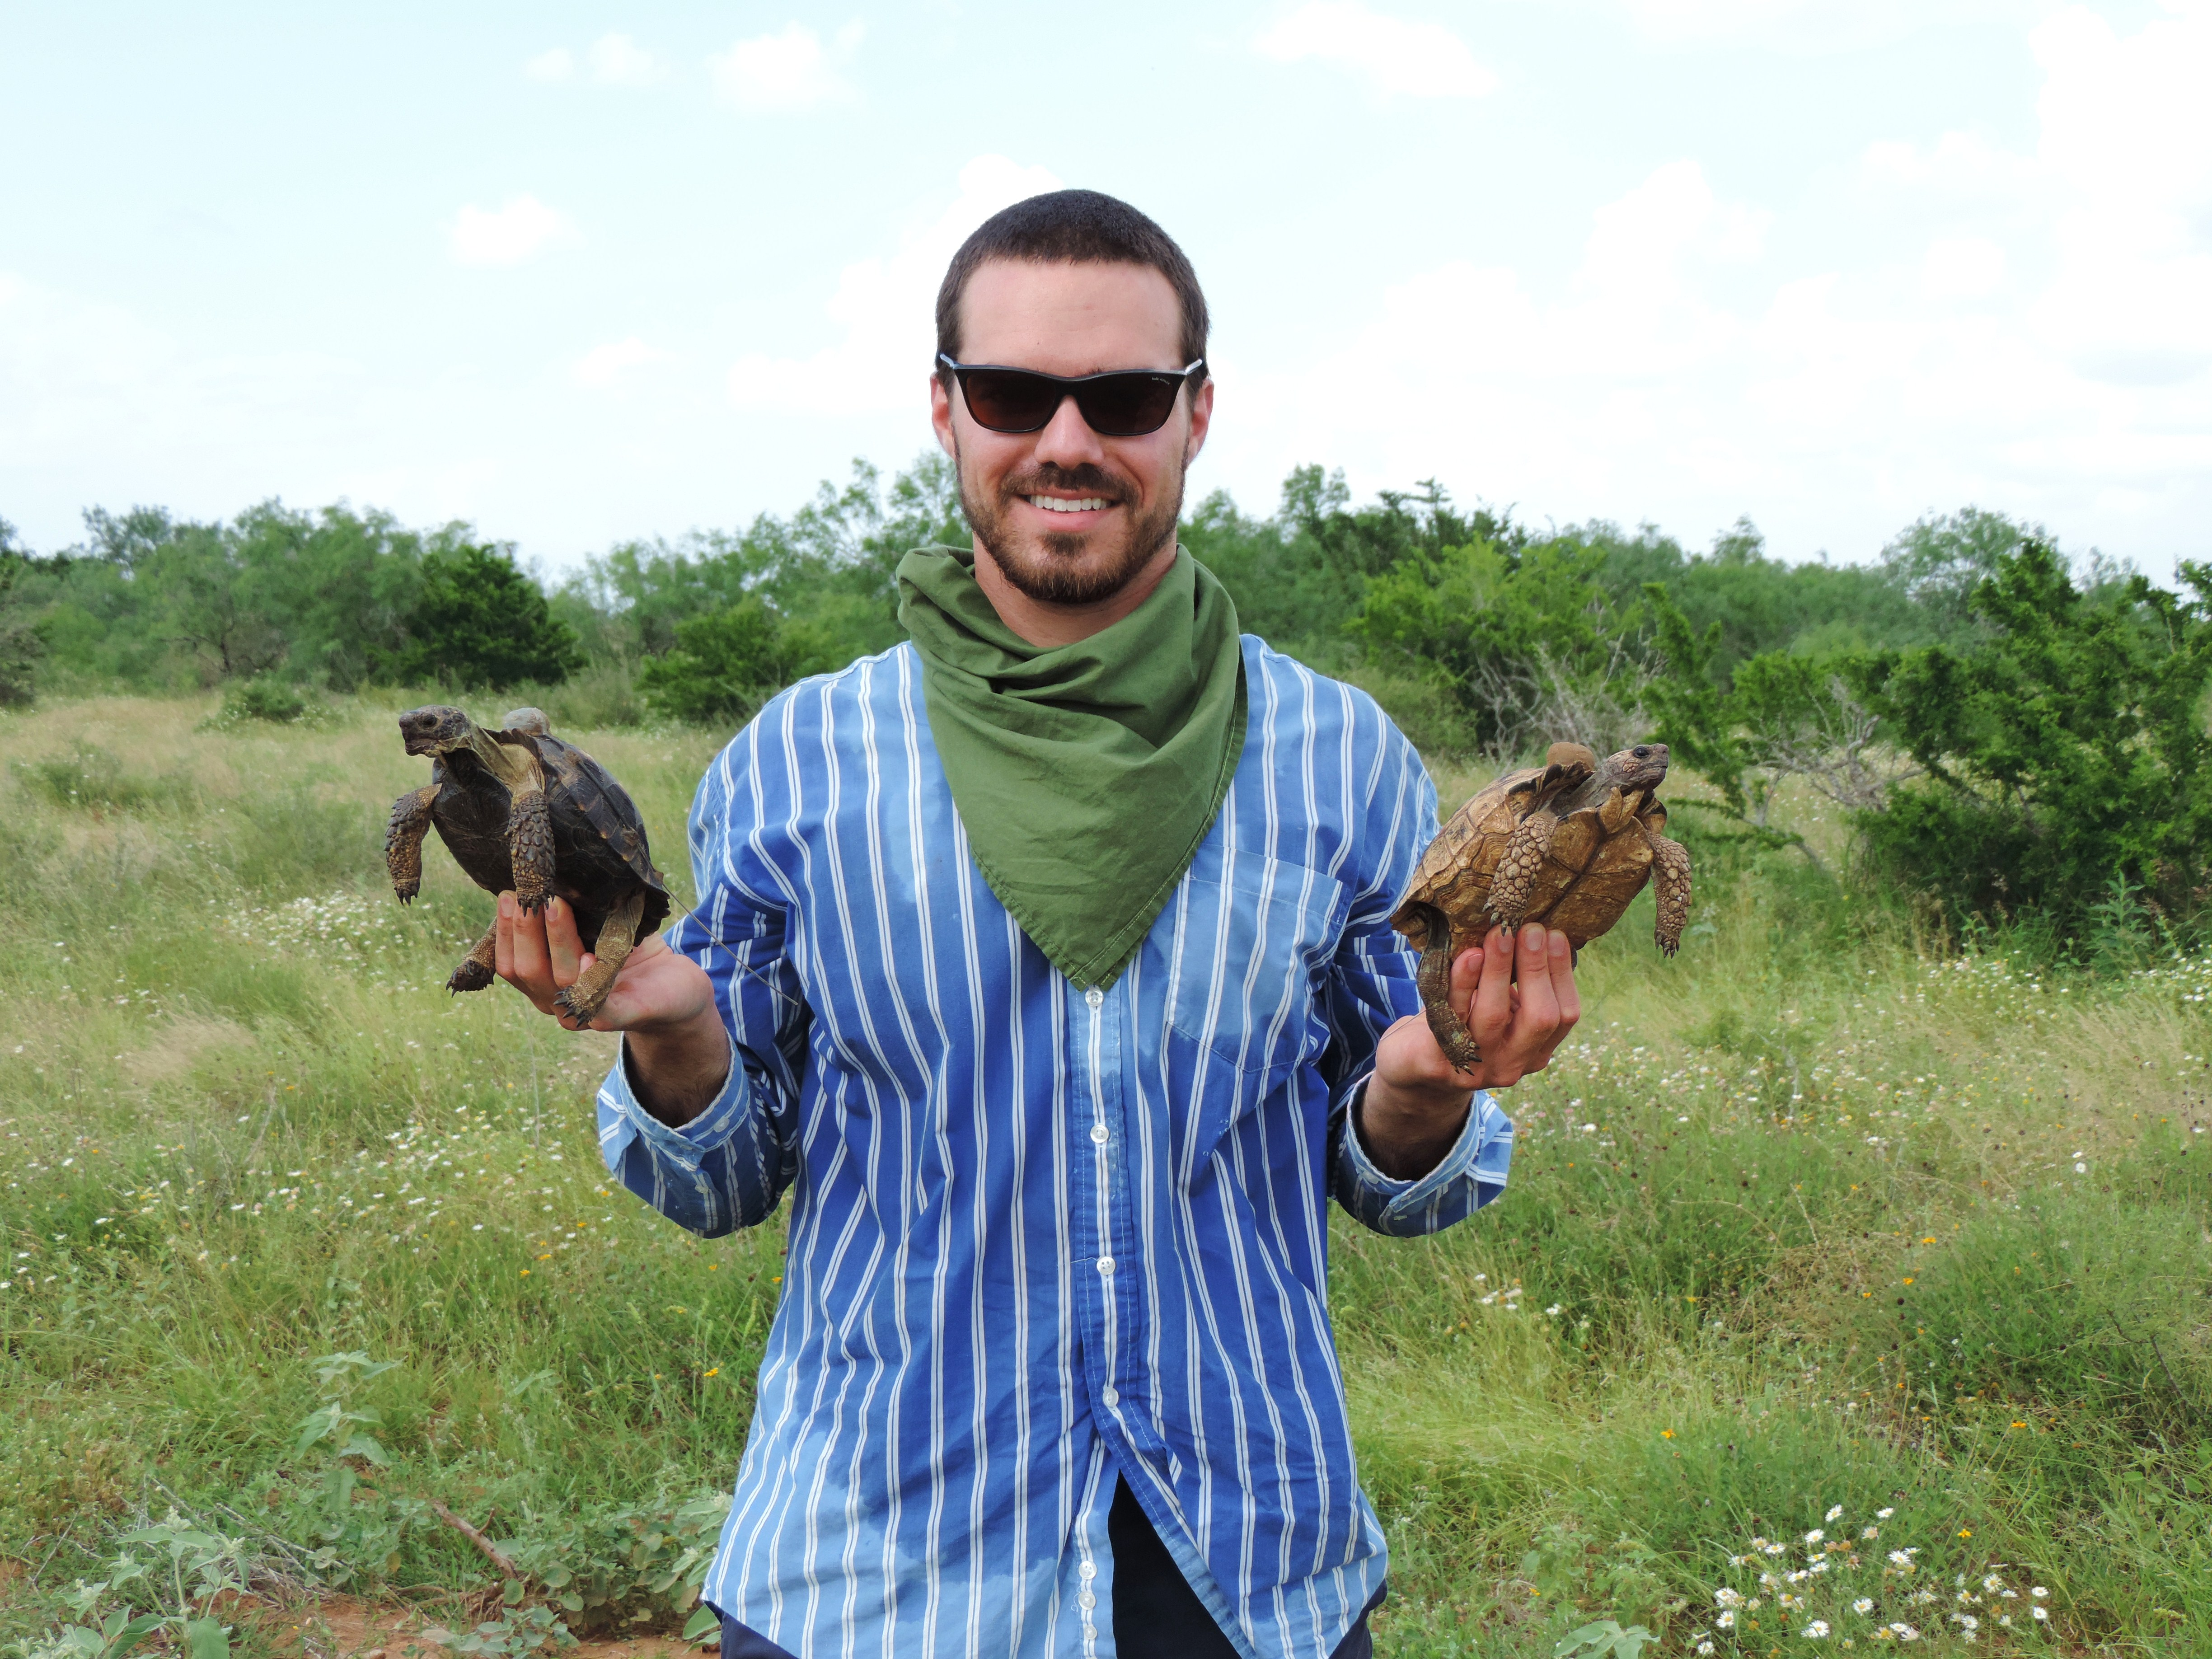 estimation of northern bobwhite densities in south texas Refining the morning covey-call survey to estimate northern bobwhite  abundance  tool to increase abundance of northern bobwhite in south texas   hunting success on albany, georgia plantations: the albany quail project's  modern.